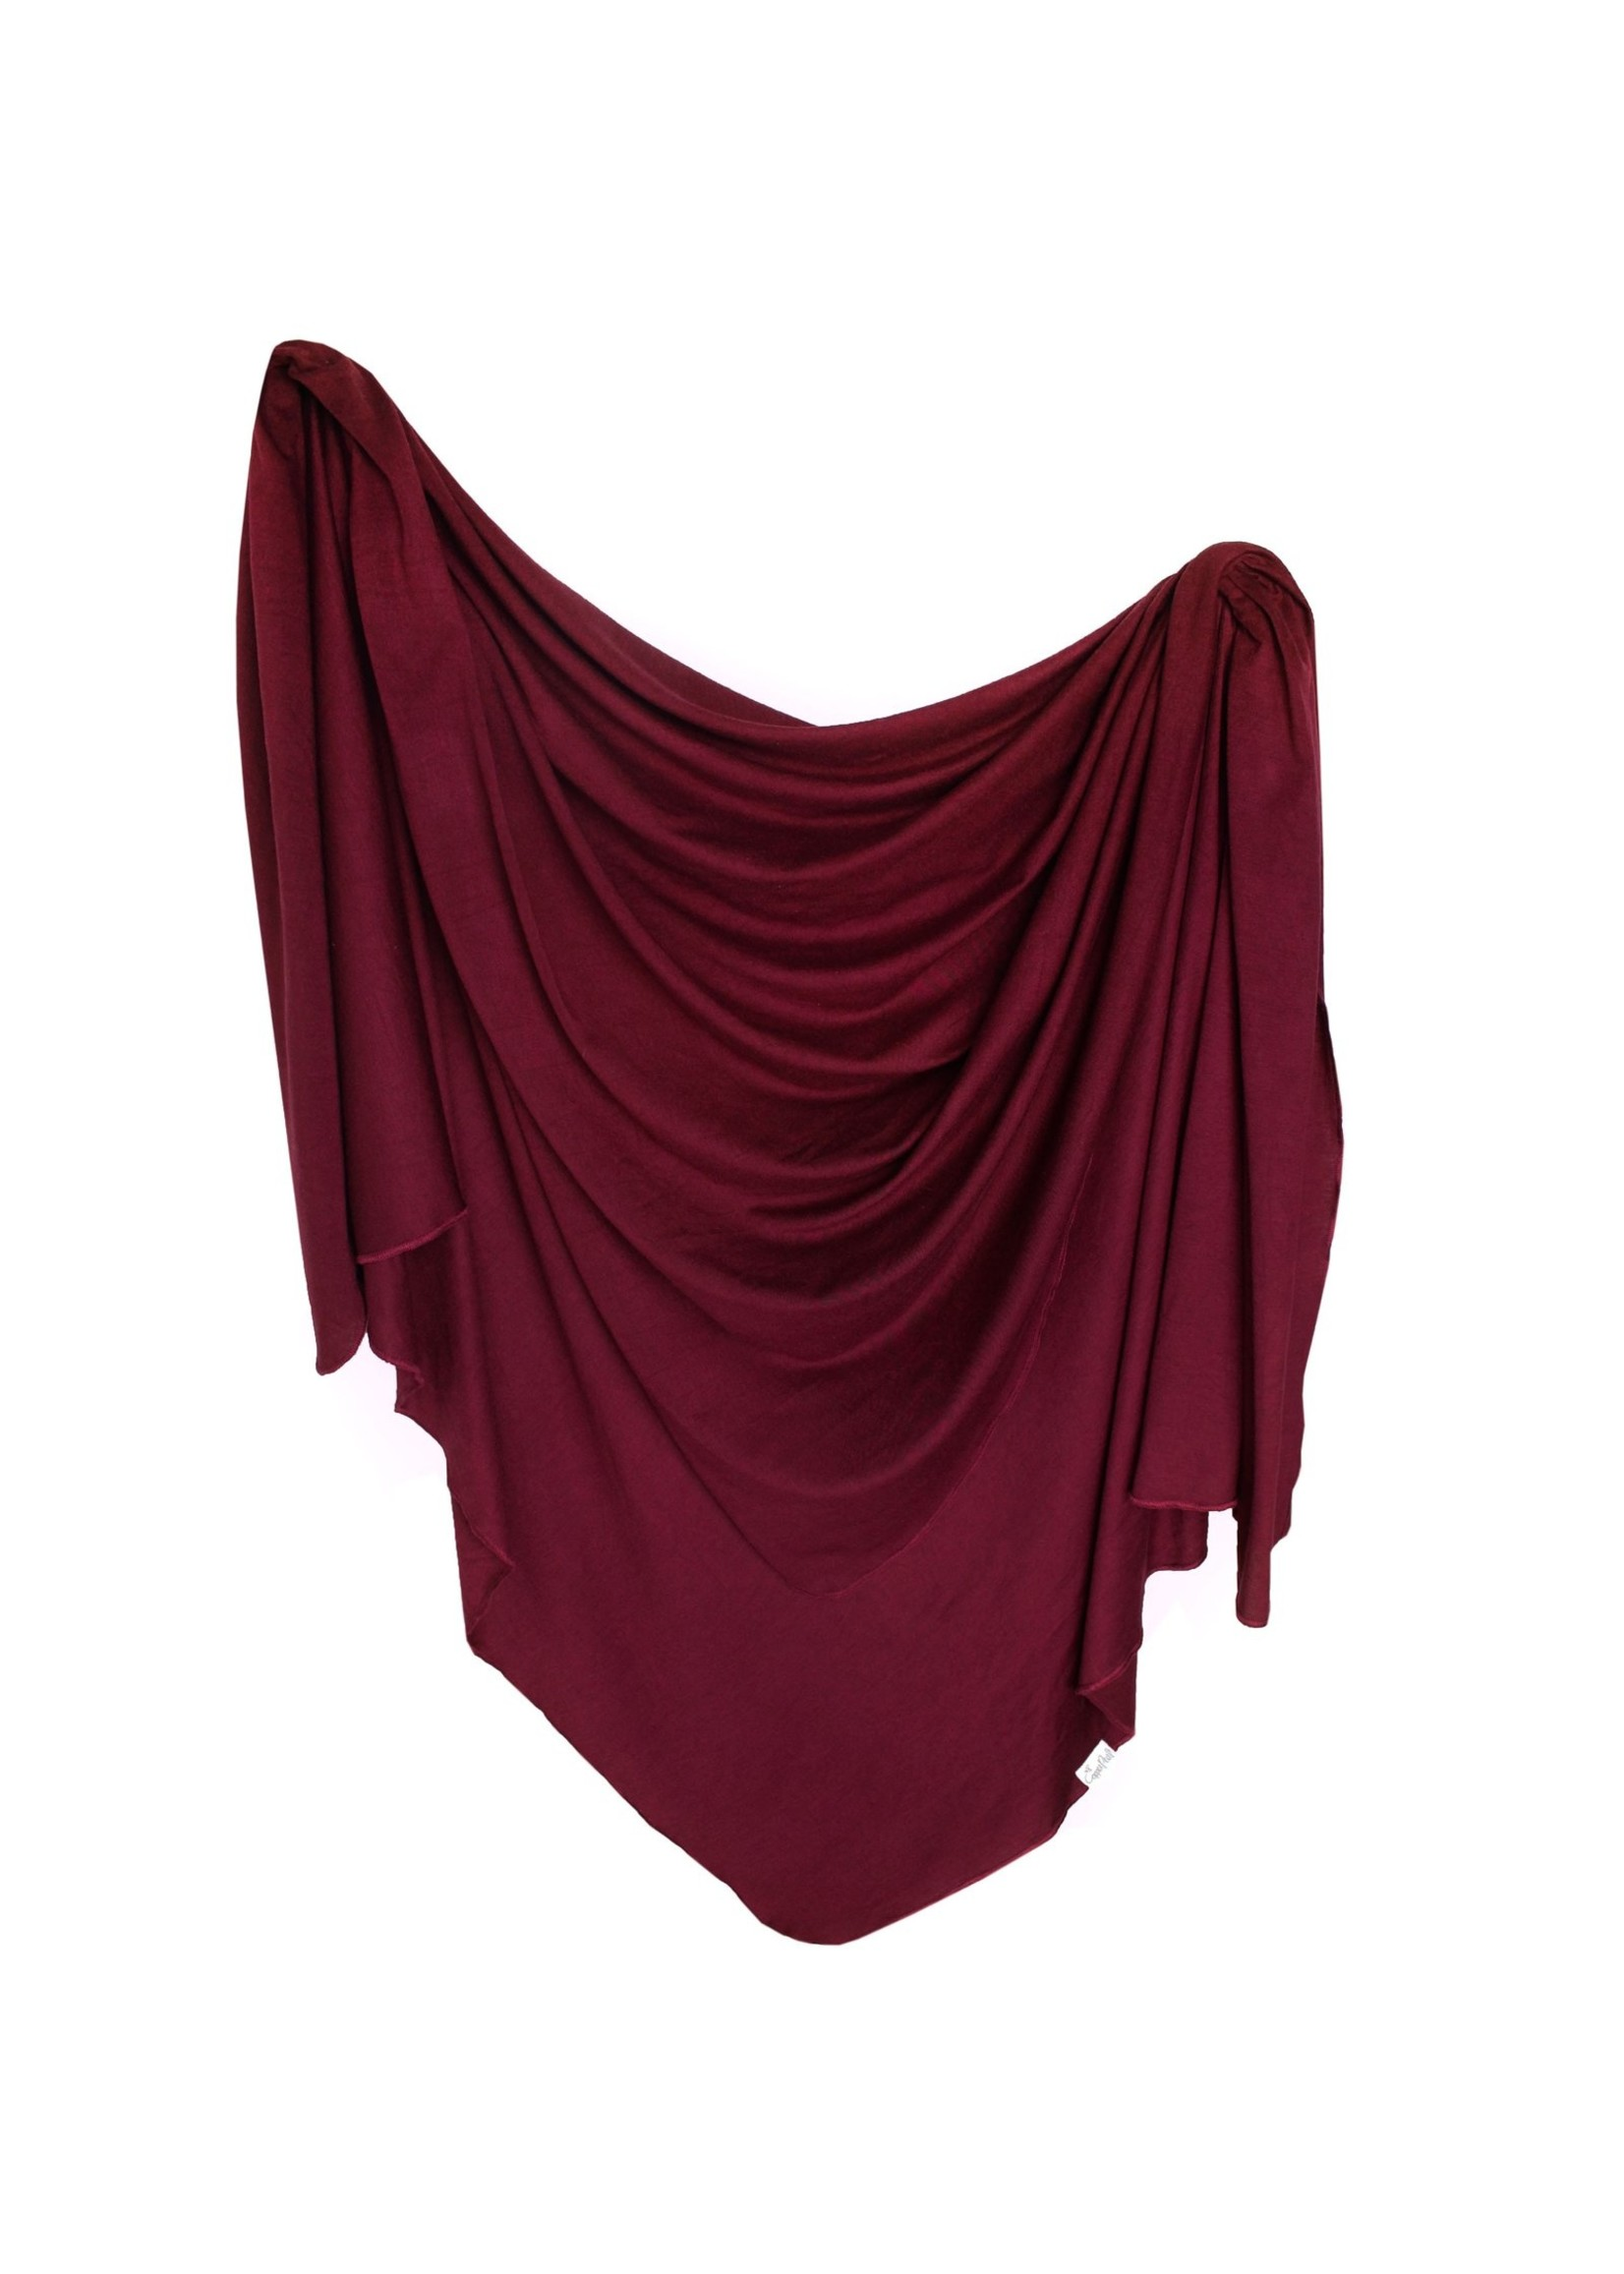 Copper pearl Swaddle Blanket - Ruby